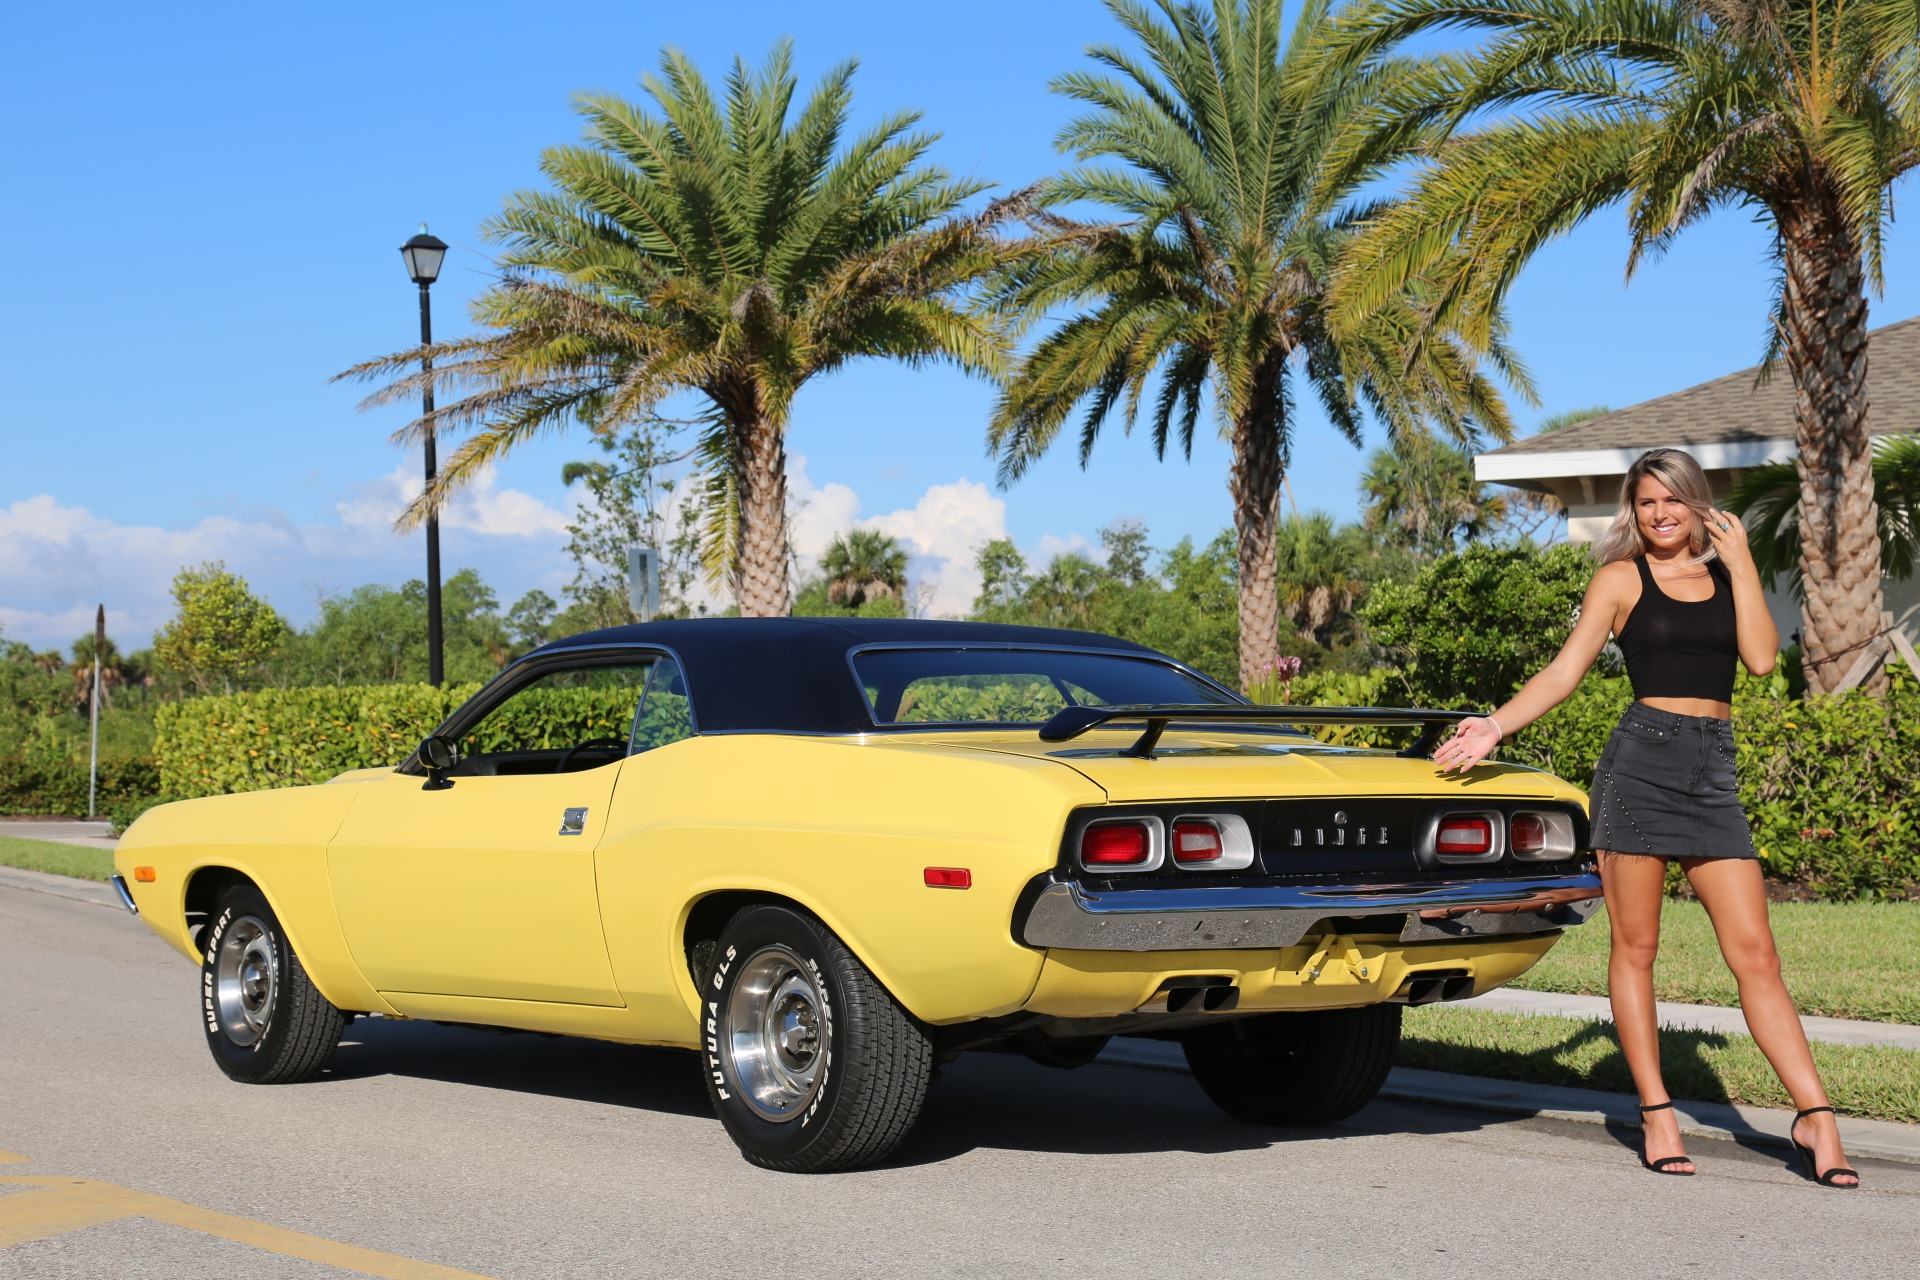 Used 1973 Dodge Challenger 440 V8 for sale Sold at Muscle Cars for Sale Inc. in Fort Myers FL 33912 6